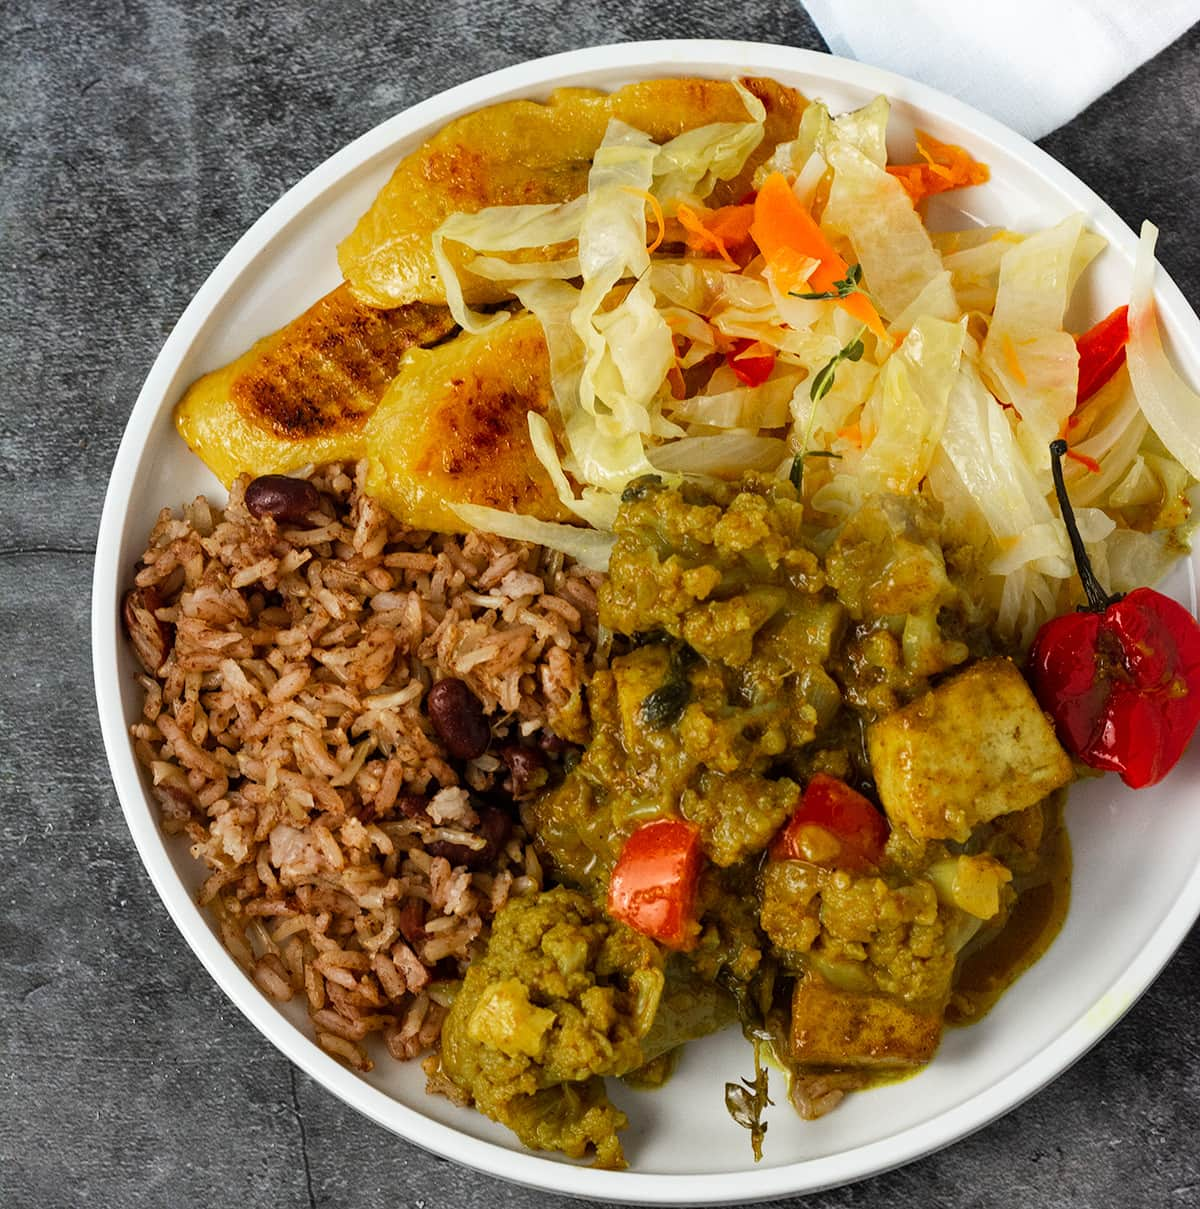 Overlay of curry tofu with cauliflower, steamed cabbage, baked plantains and Jamaican rice and peas on a white plate on a grey background